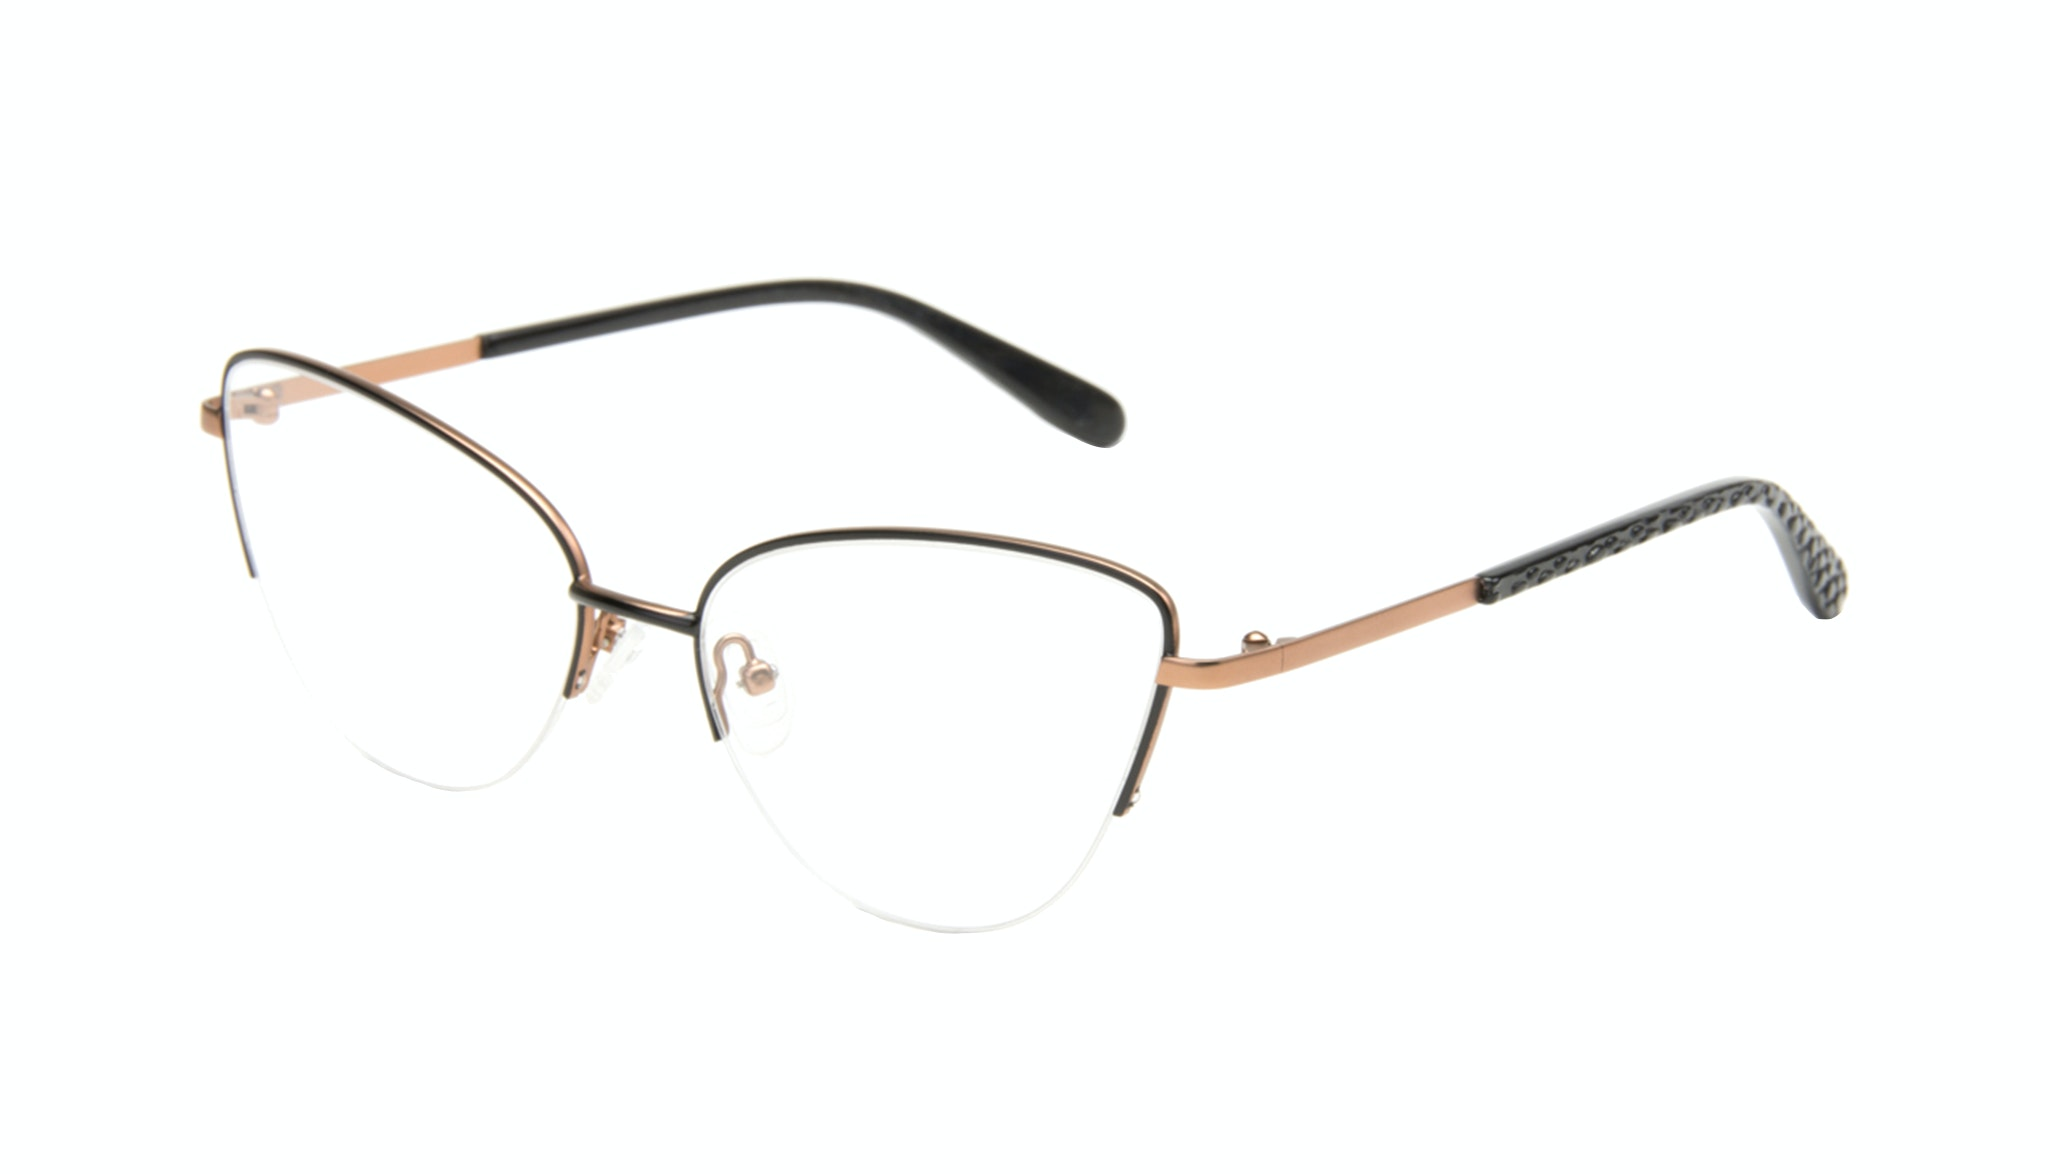 Affordable Fashion Glasses Cat Eye Semi-Rimless Eyeglasses Women Airy  Black Copper Tilt